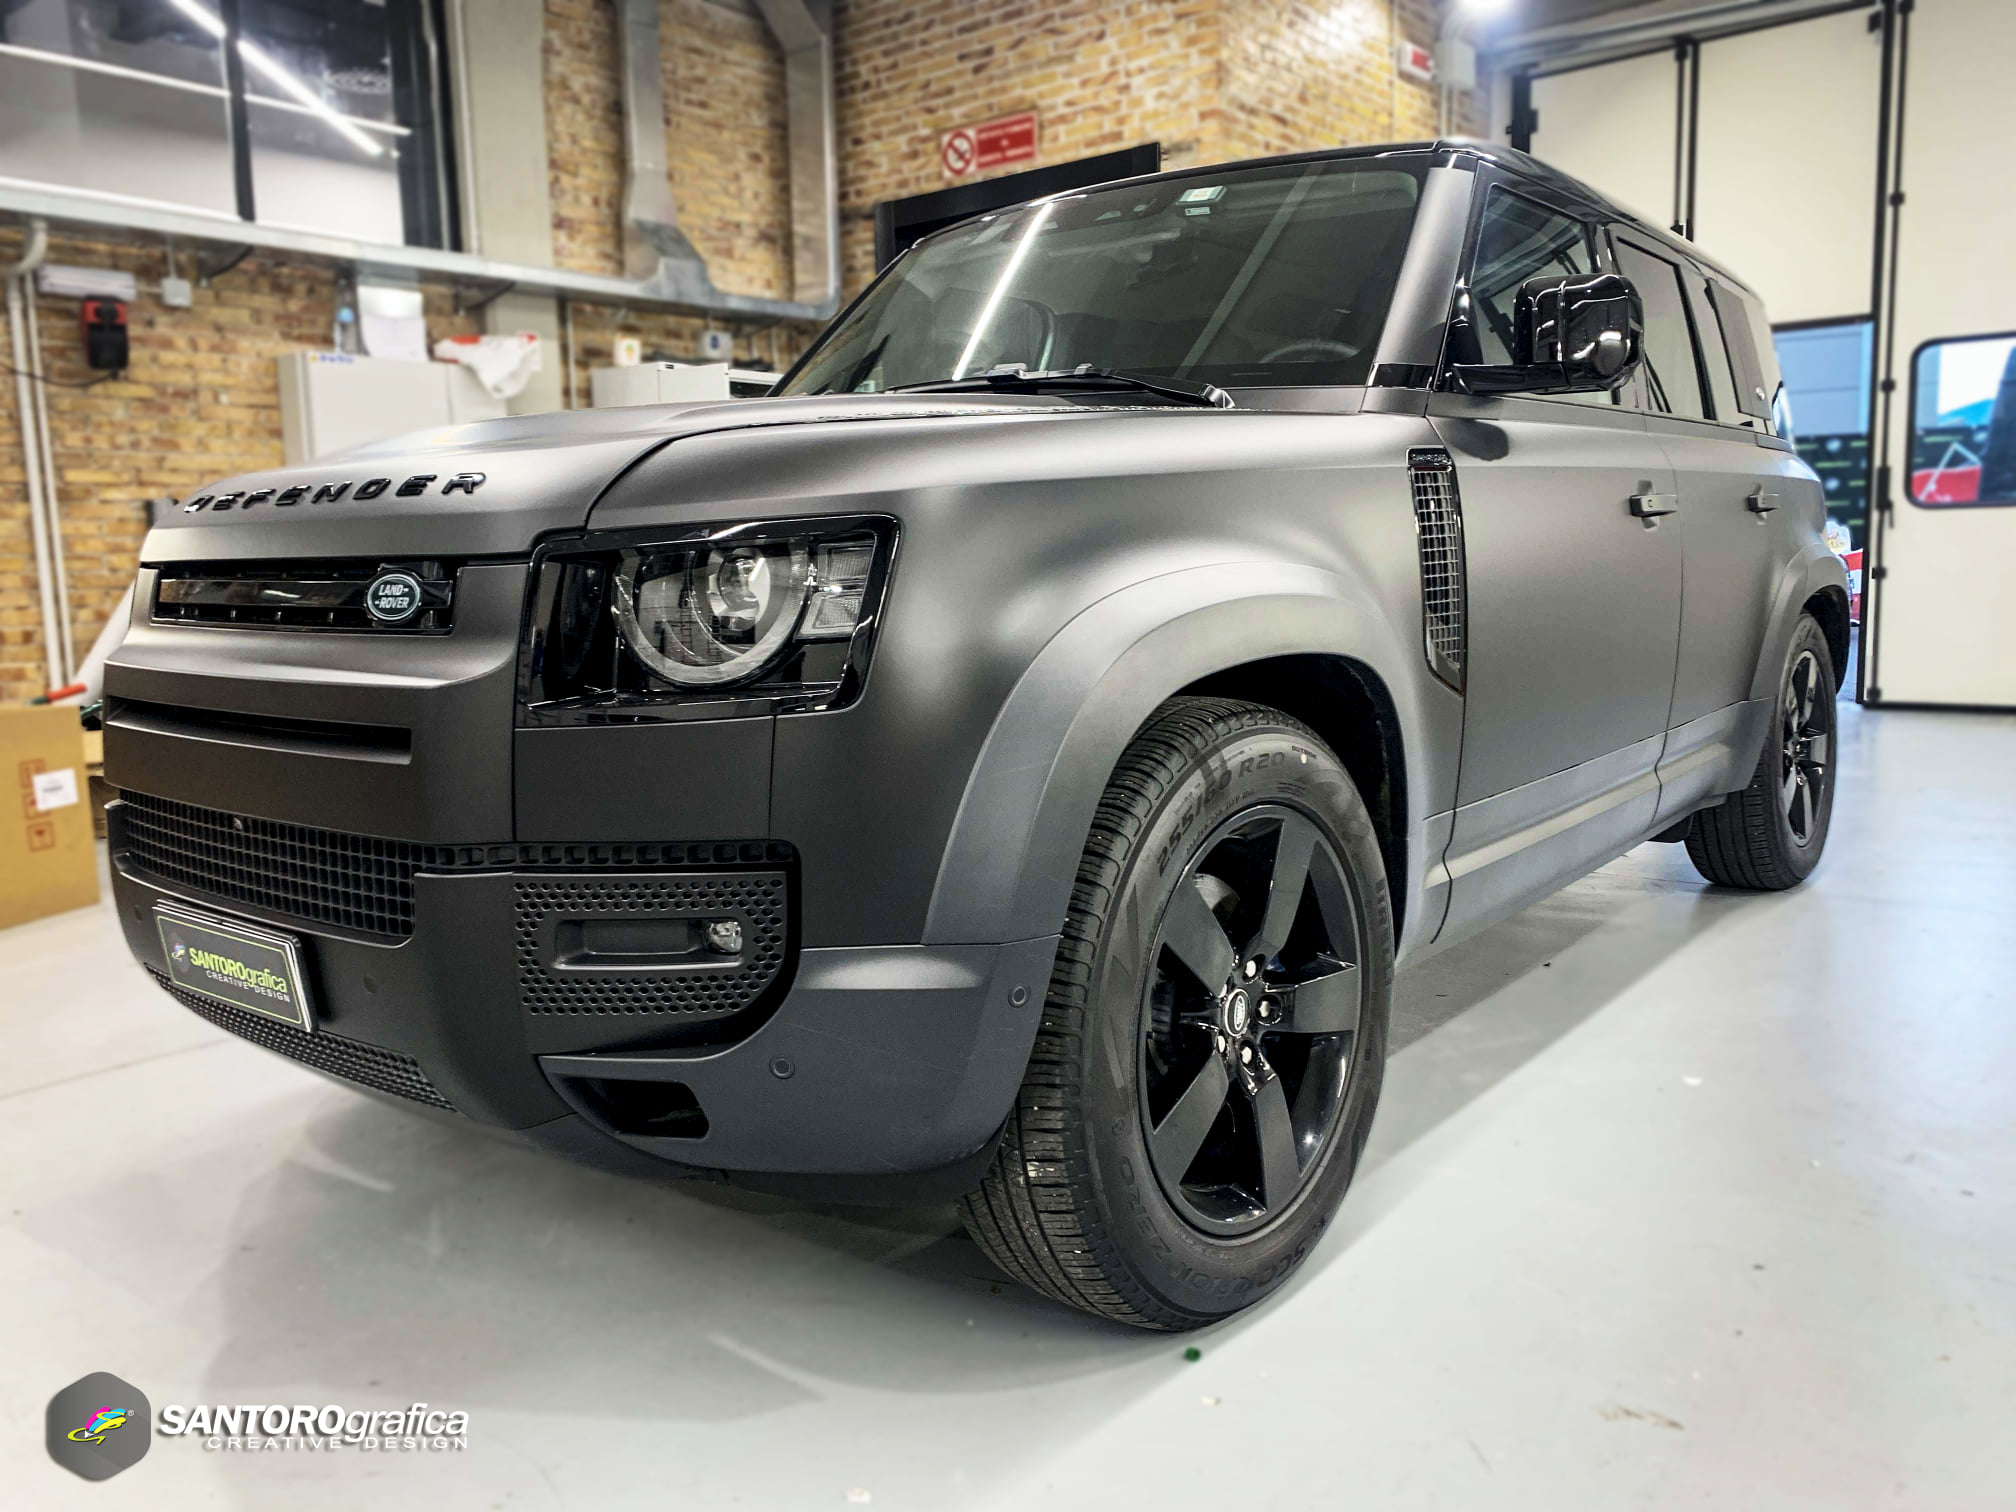 car wrapping land rover defender nero opaco 2